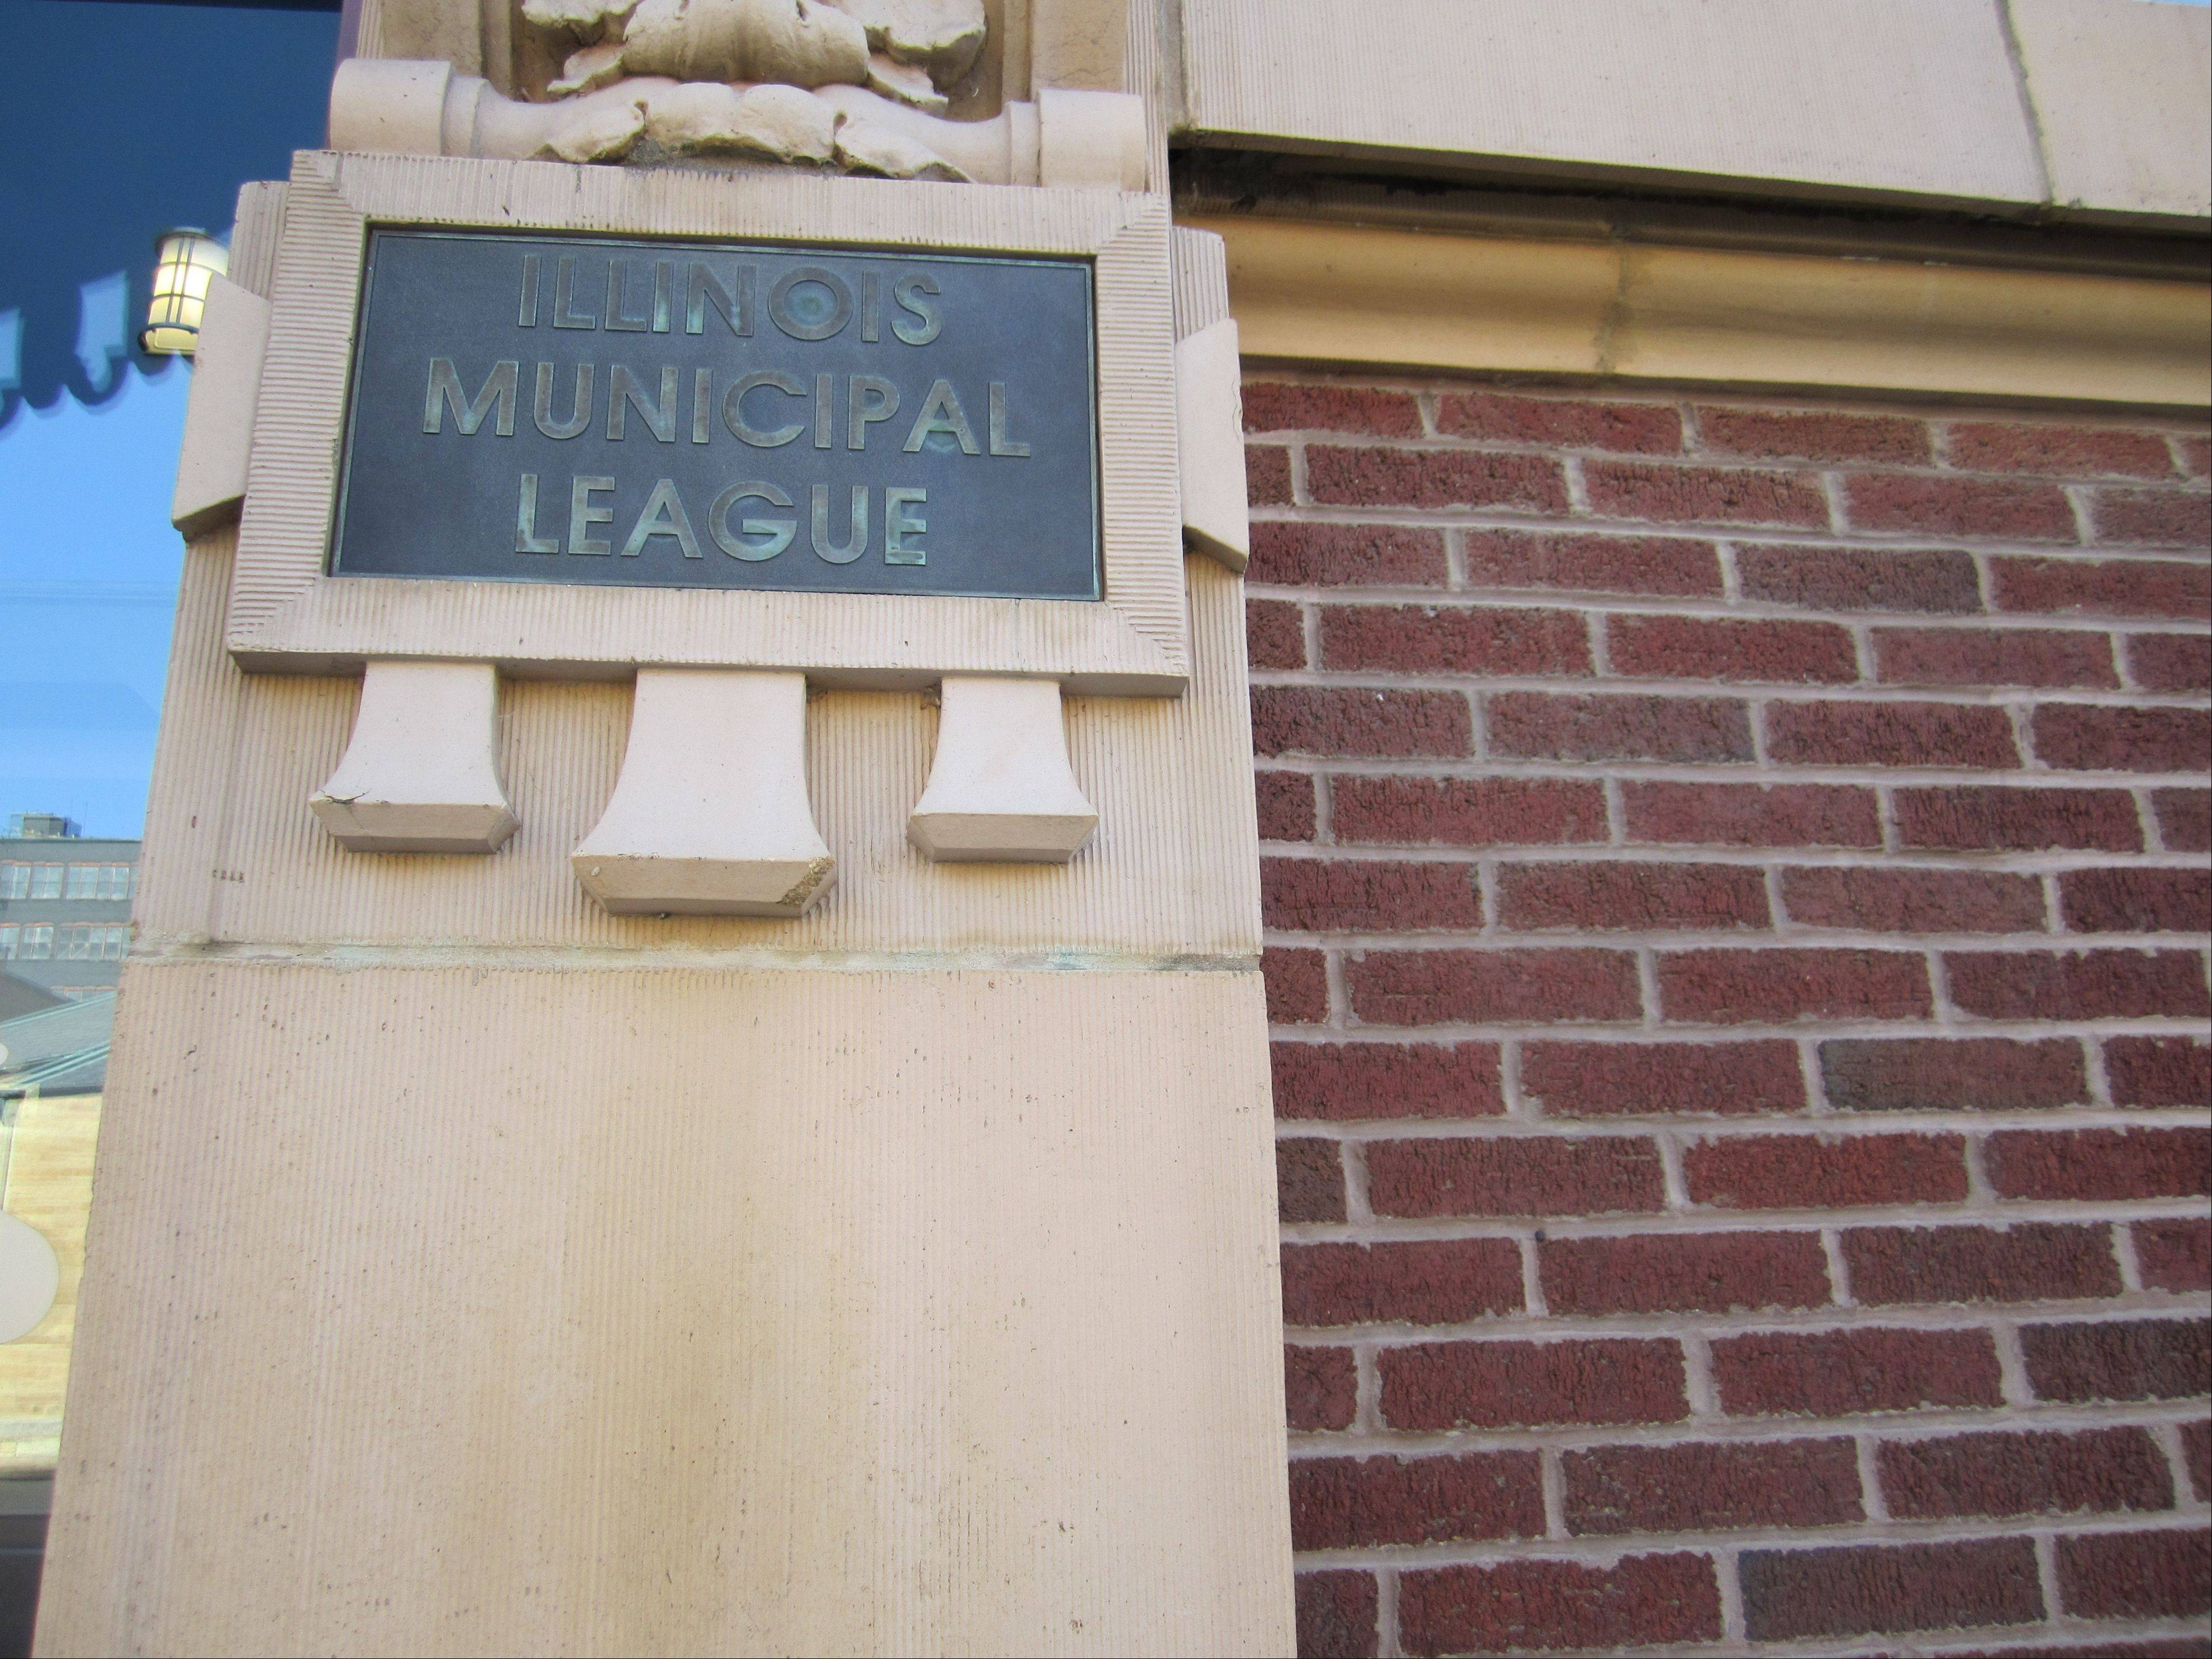 Renovations at the Illinois Municipal League headquarters in Springfield are one area criticized by several suburban may